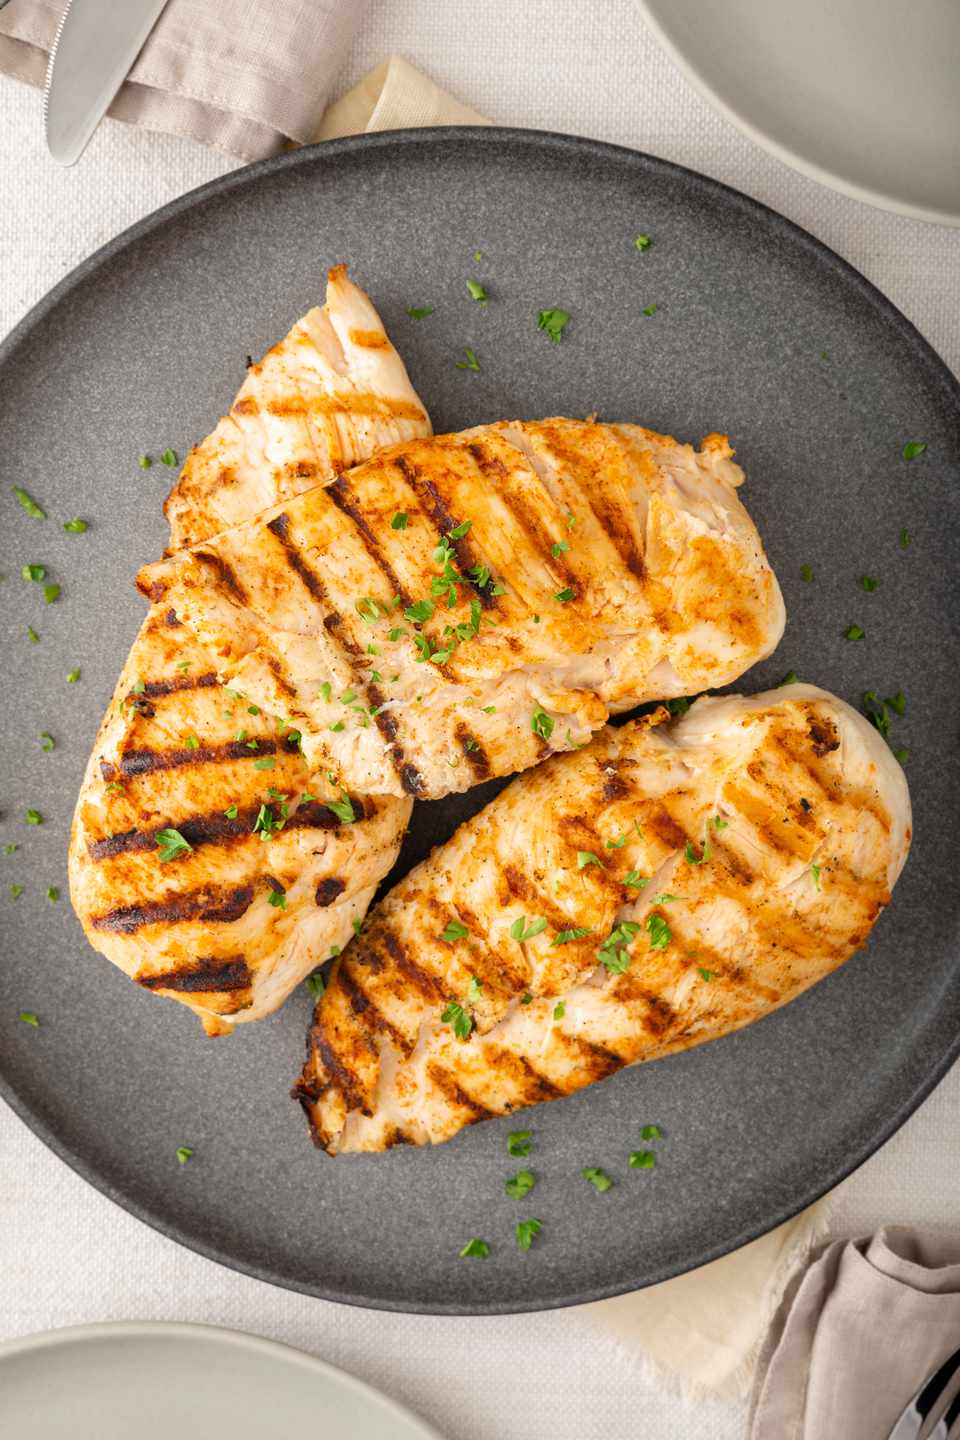 Overhead view of grilled and brined chicken on a plate.